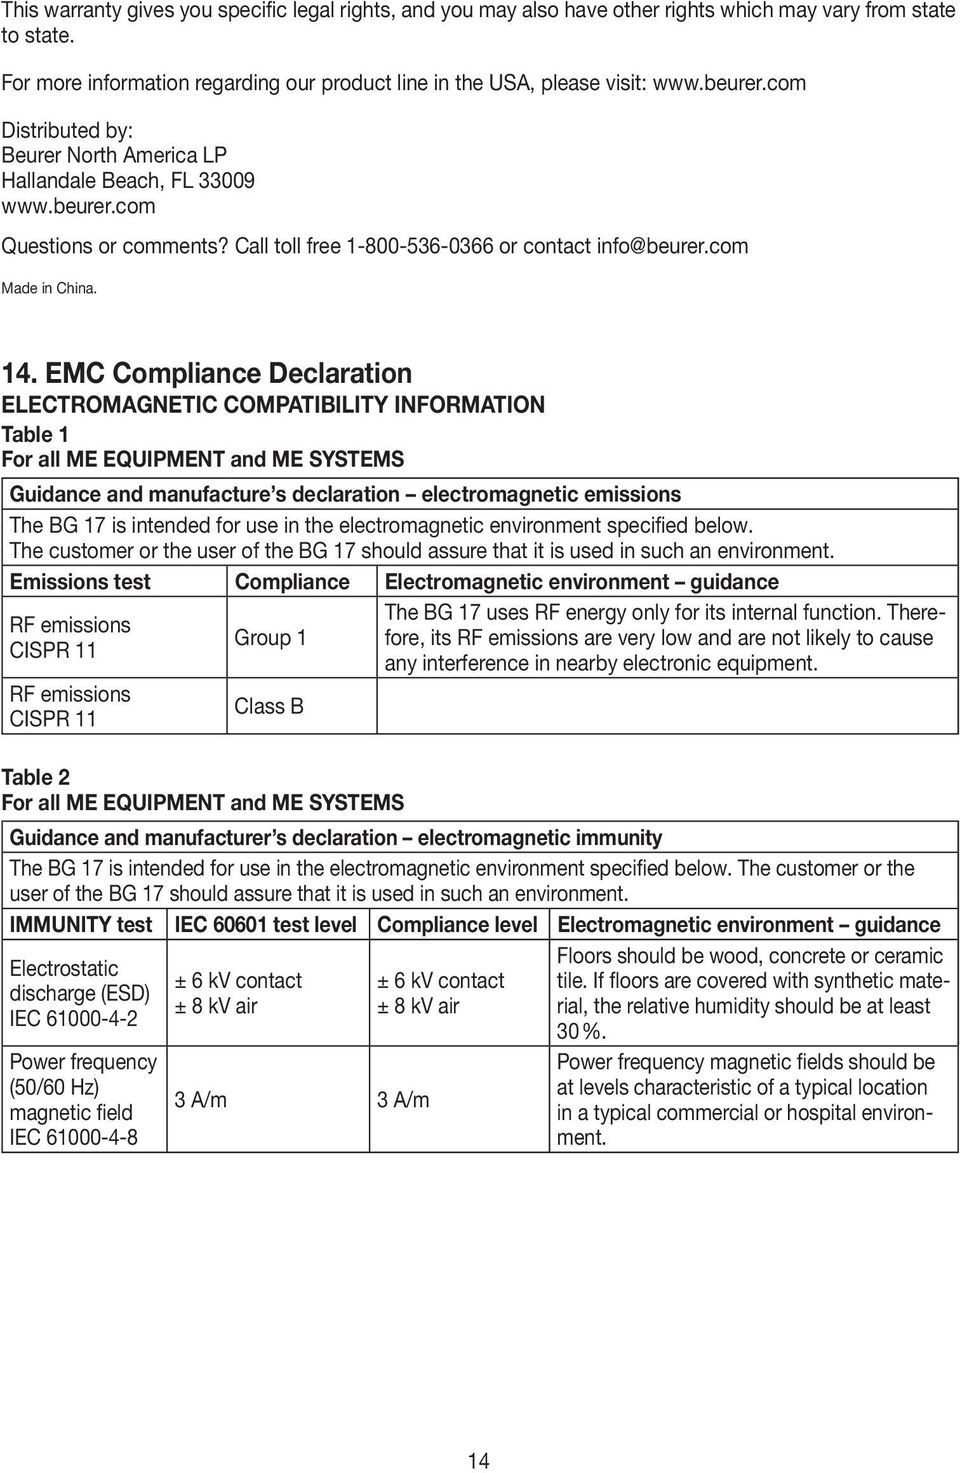 EMC Compliance Declaration ELECTROMAGNETIC COMPATIBILITY INFORMATION Table 1 For all ME EQUIPMENT and ME SYSTEMS Guidance and manufacture s declaration electromagnetic emissions The BG 17 is intended